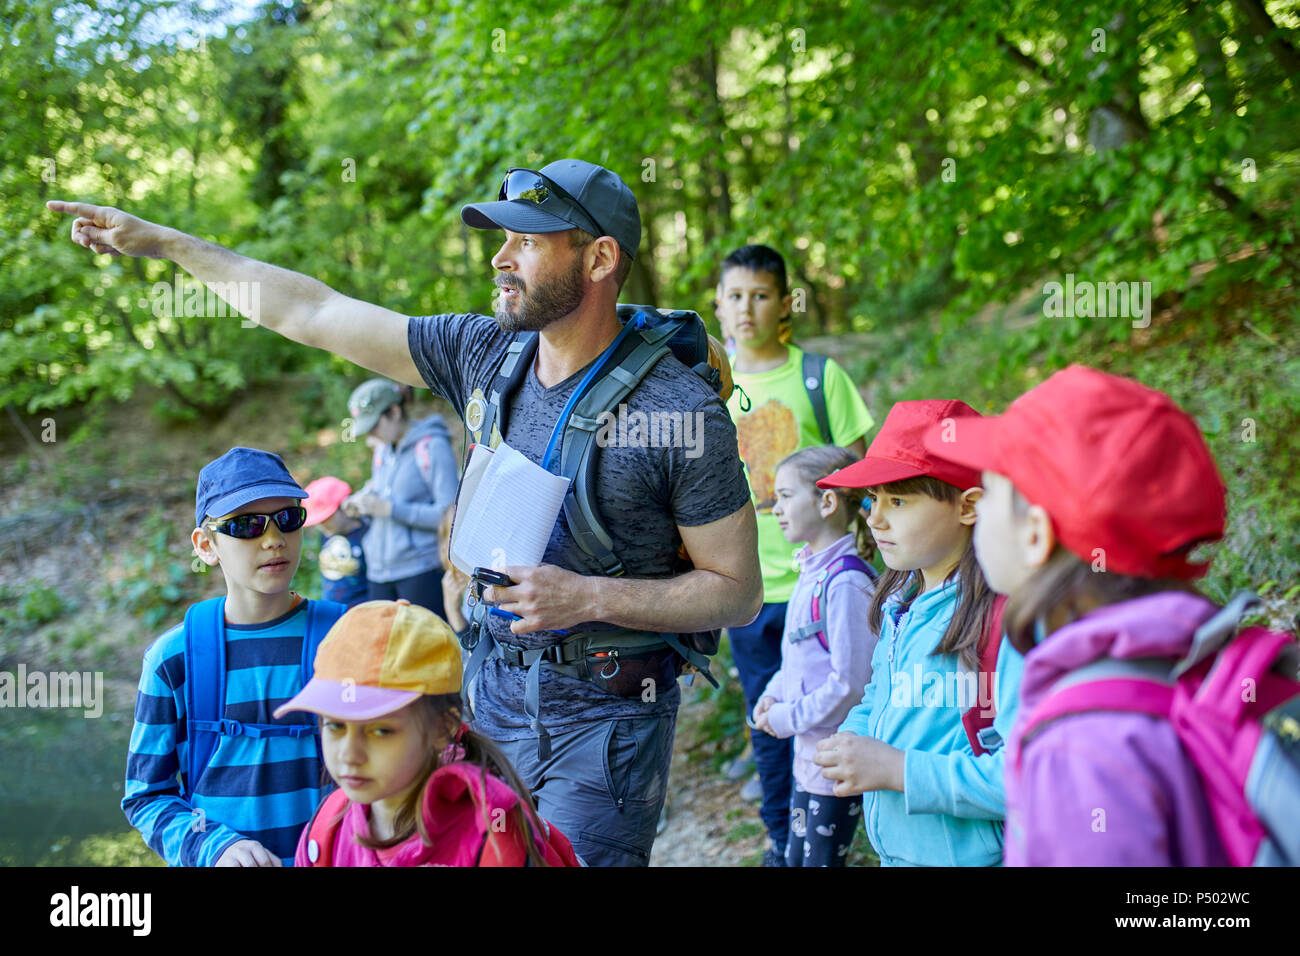 Man talking to kids on a field trip in forest - Stock Image